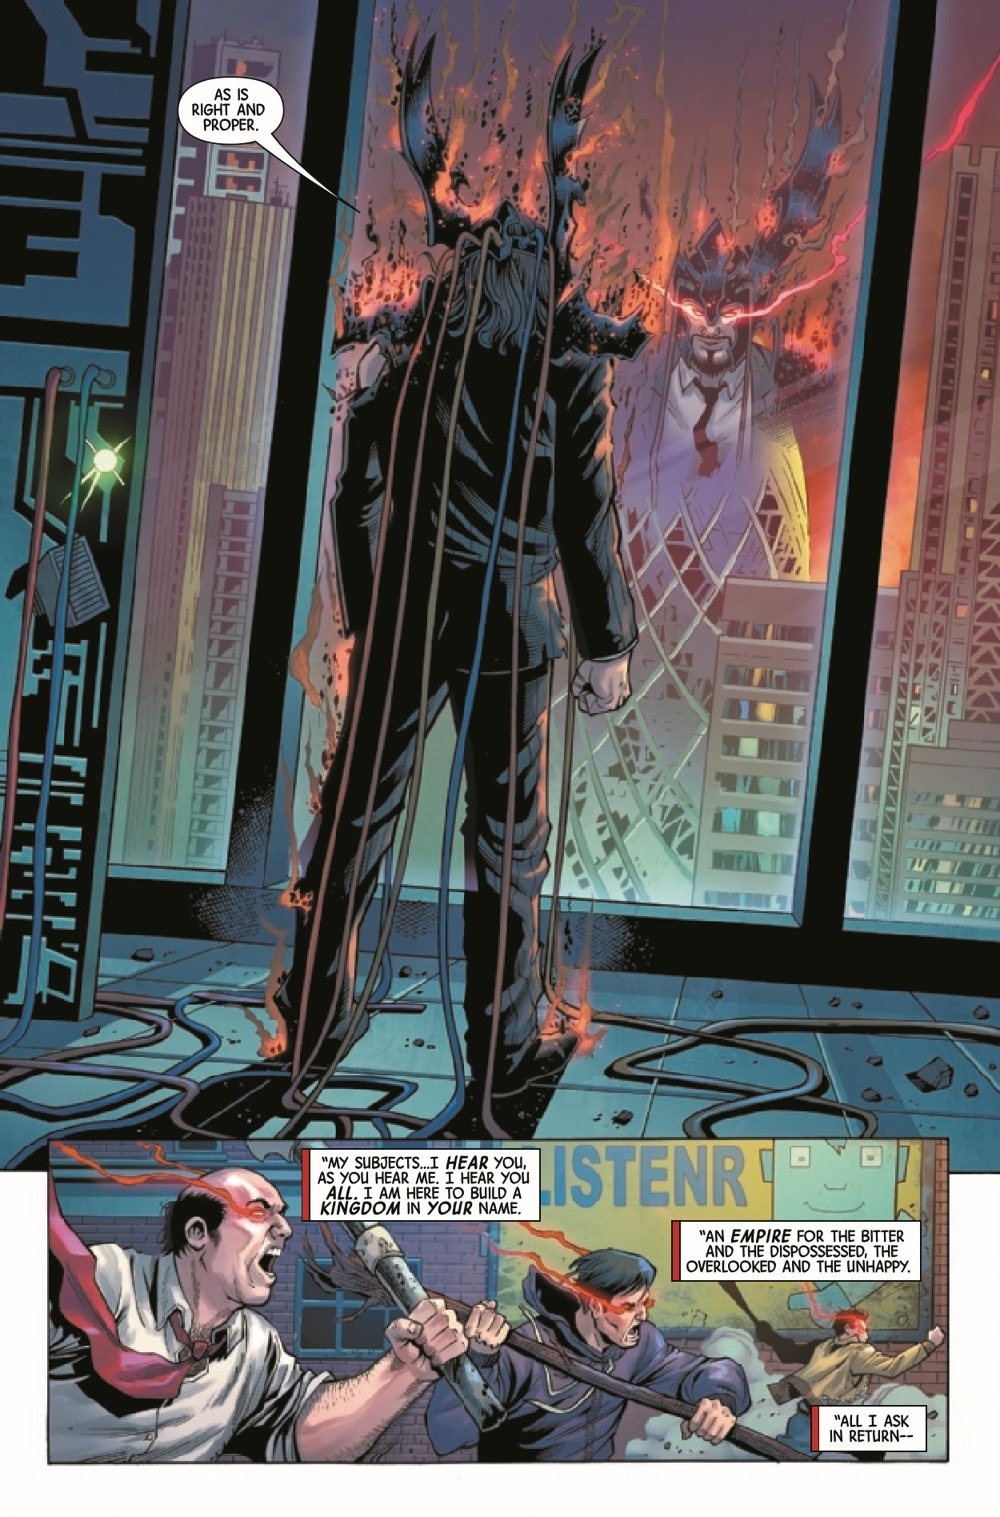 BLKKNGHTCURSE2021005_Preview-3 ComicList Previews: BLACK KNIGHT CURSE OF THE EBONY BLADE #5 (OF 5)